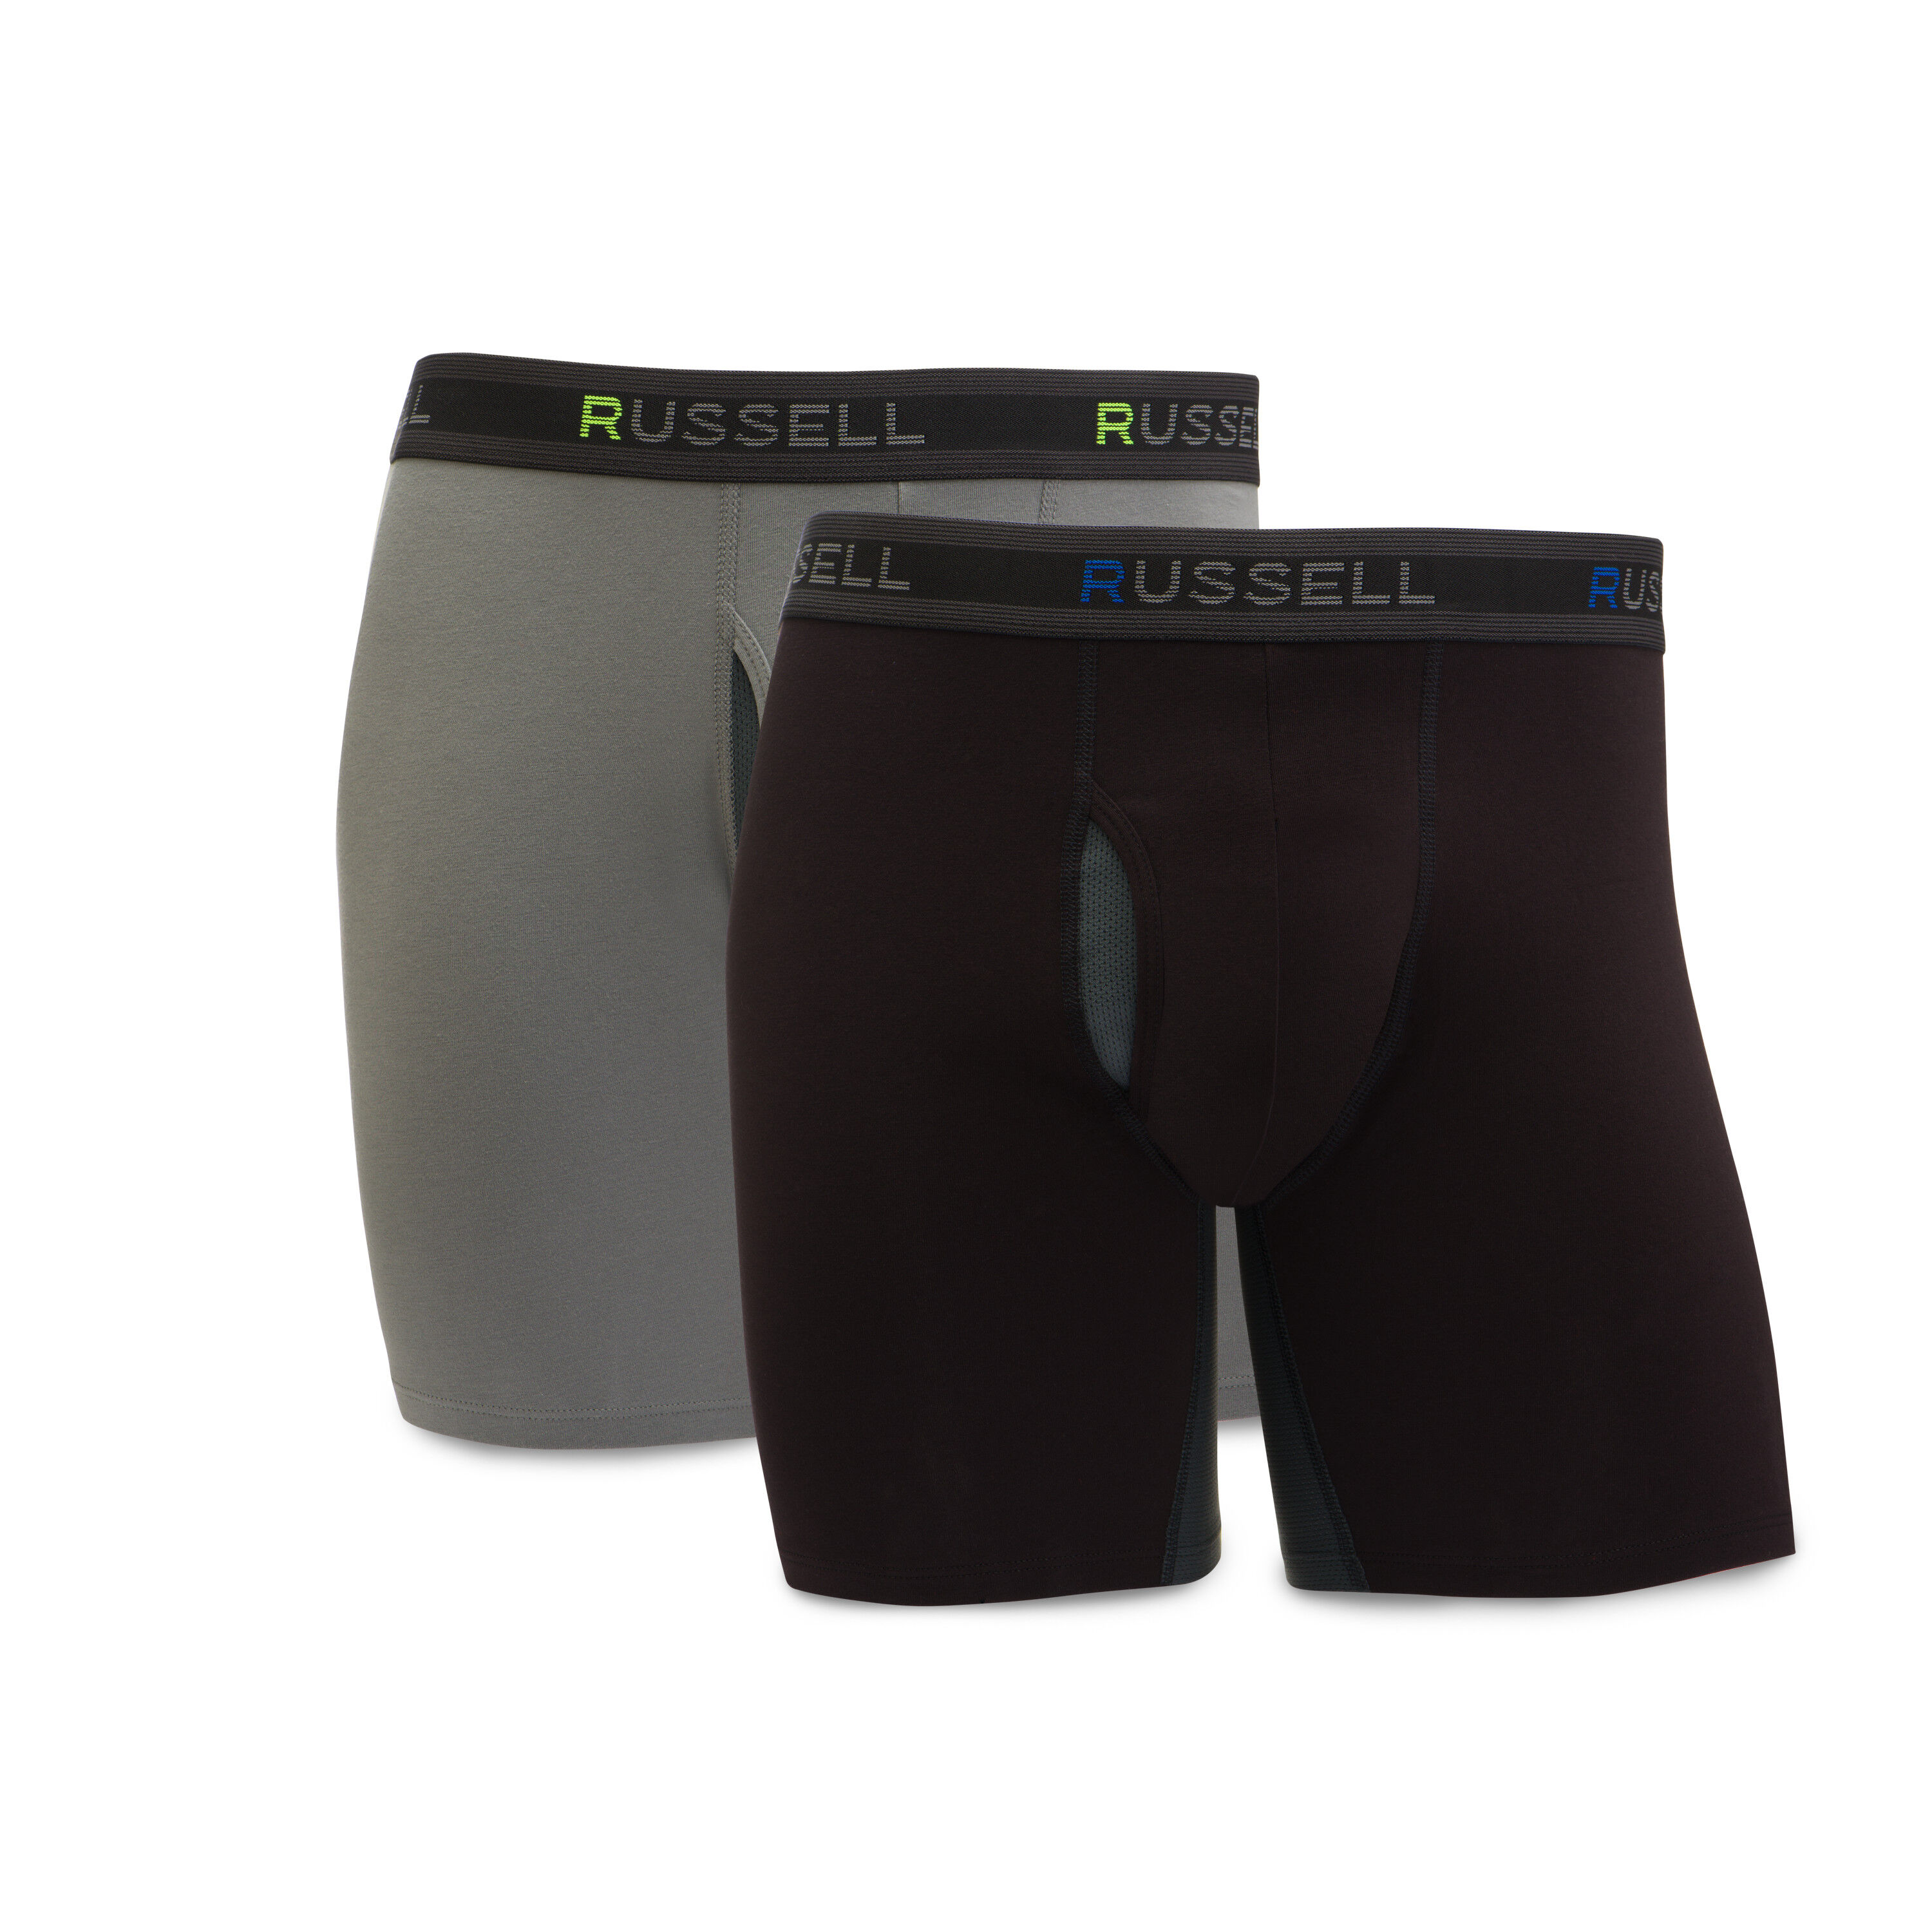 Mens Boxer Briefs Underwear Play On No Ride Up Cotton Stretch Short